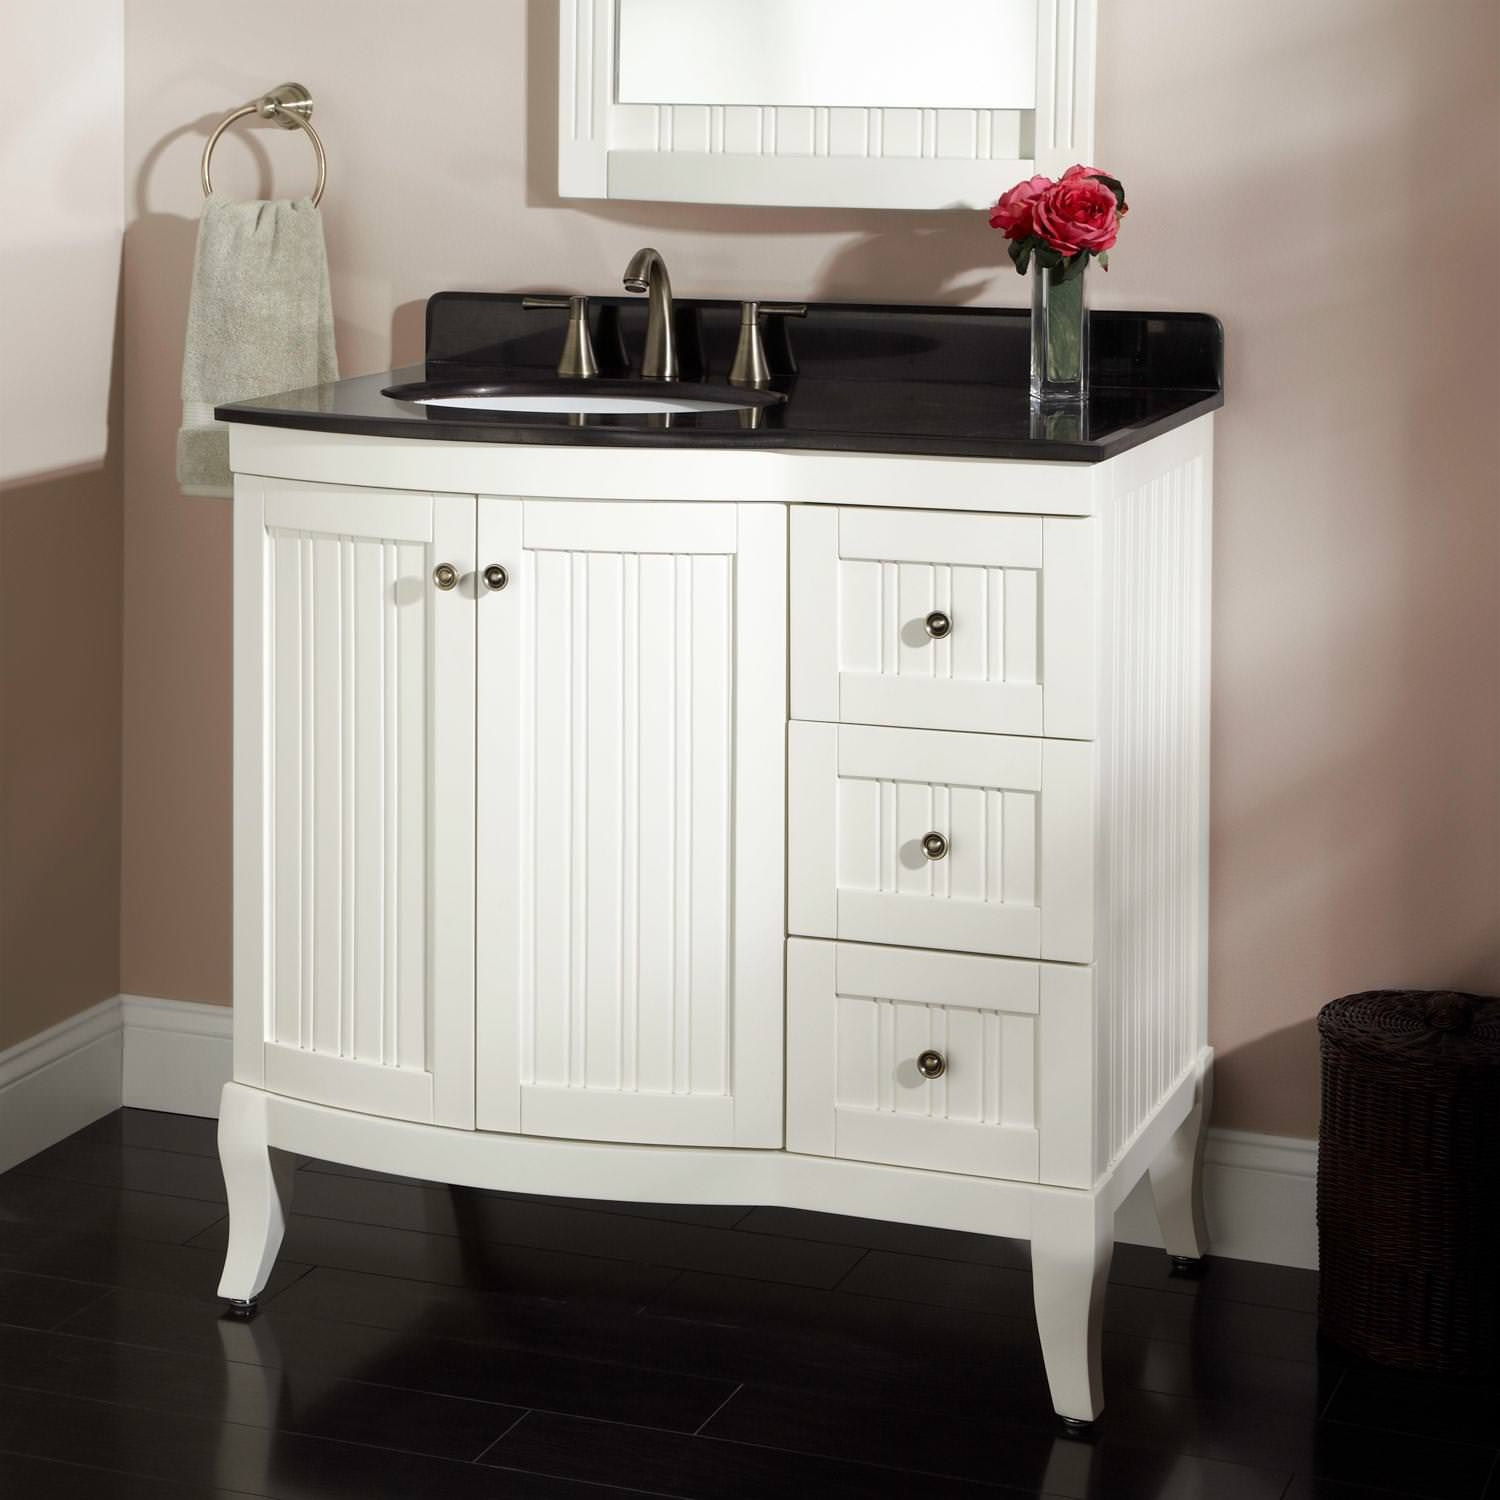 30 Inch Bathroom Vanity With Top And Drawers